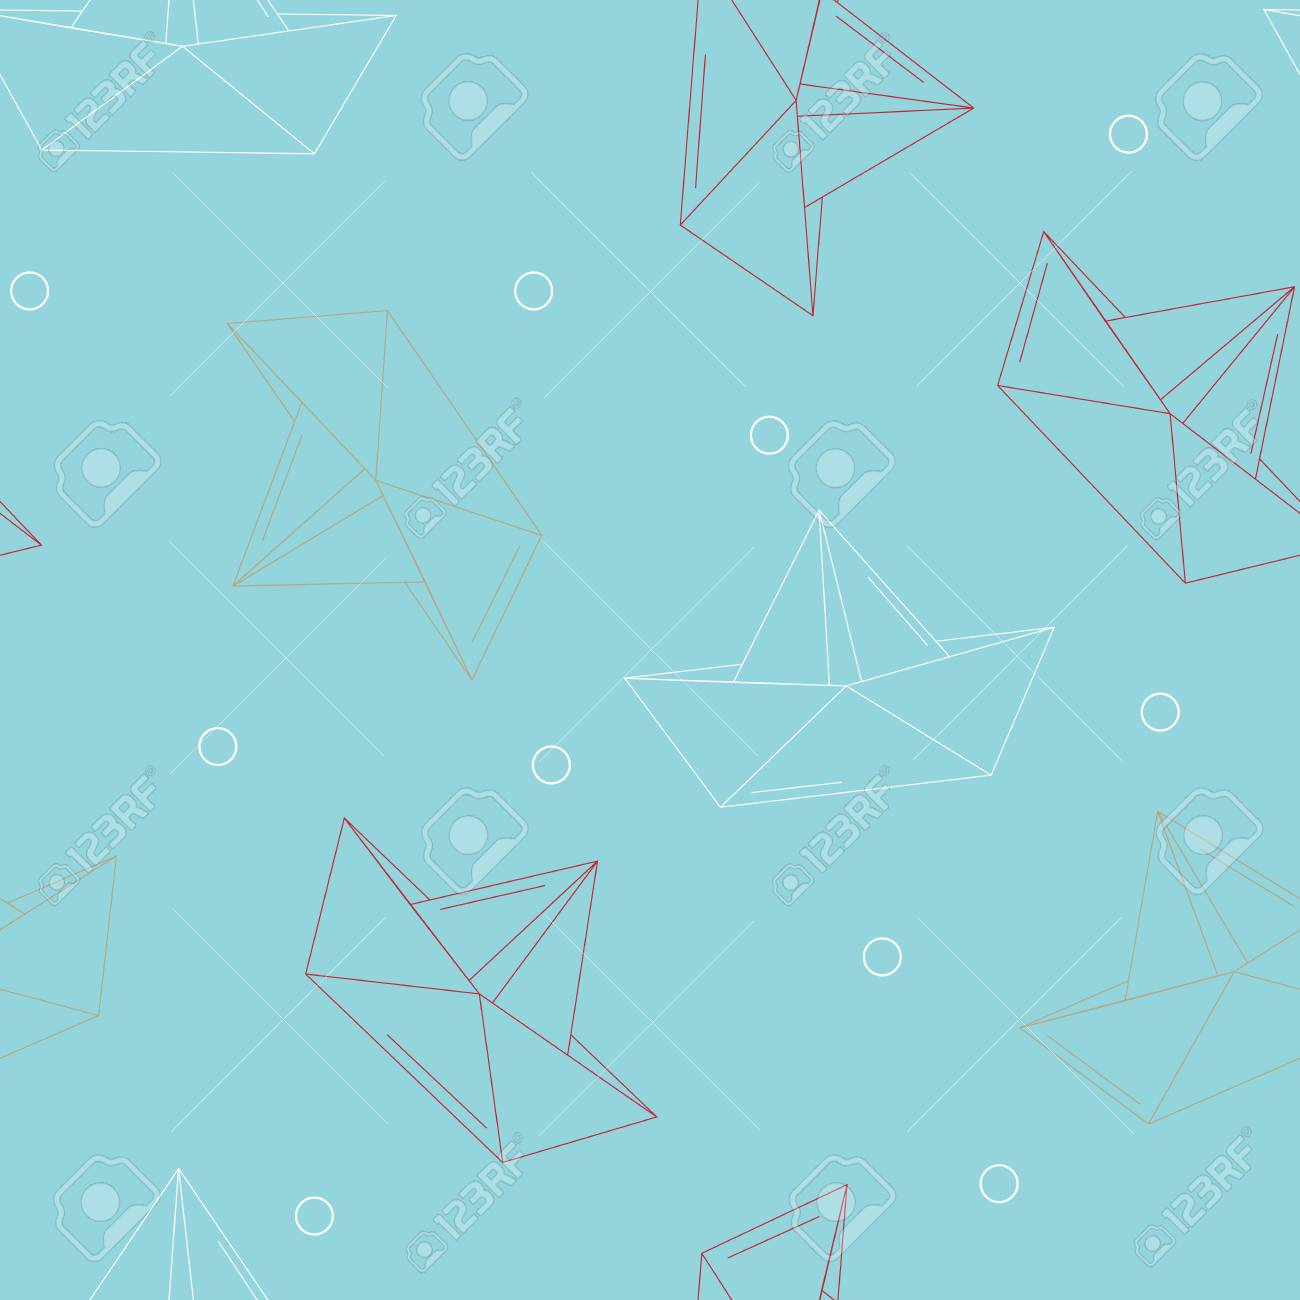 Origami Bateaux Ou Navires Papier Motif Theme Sea Seamless Collection Milieux Vector Illustration Clip Art Libres De Droits Vecteurs Et Illustration Image 56739191